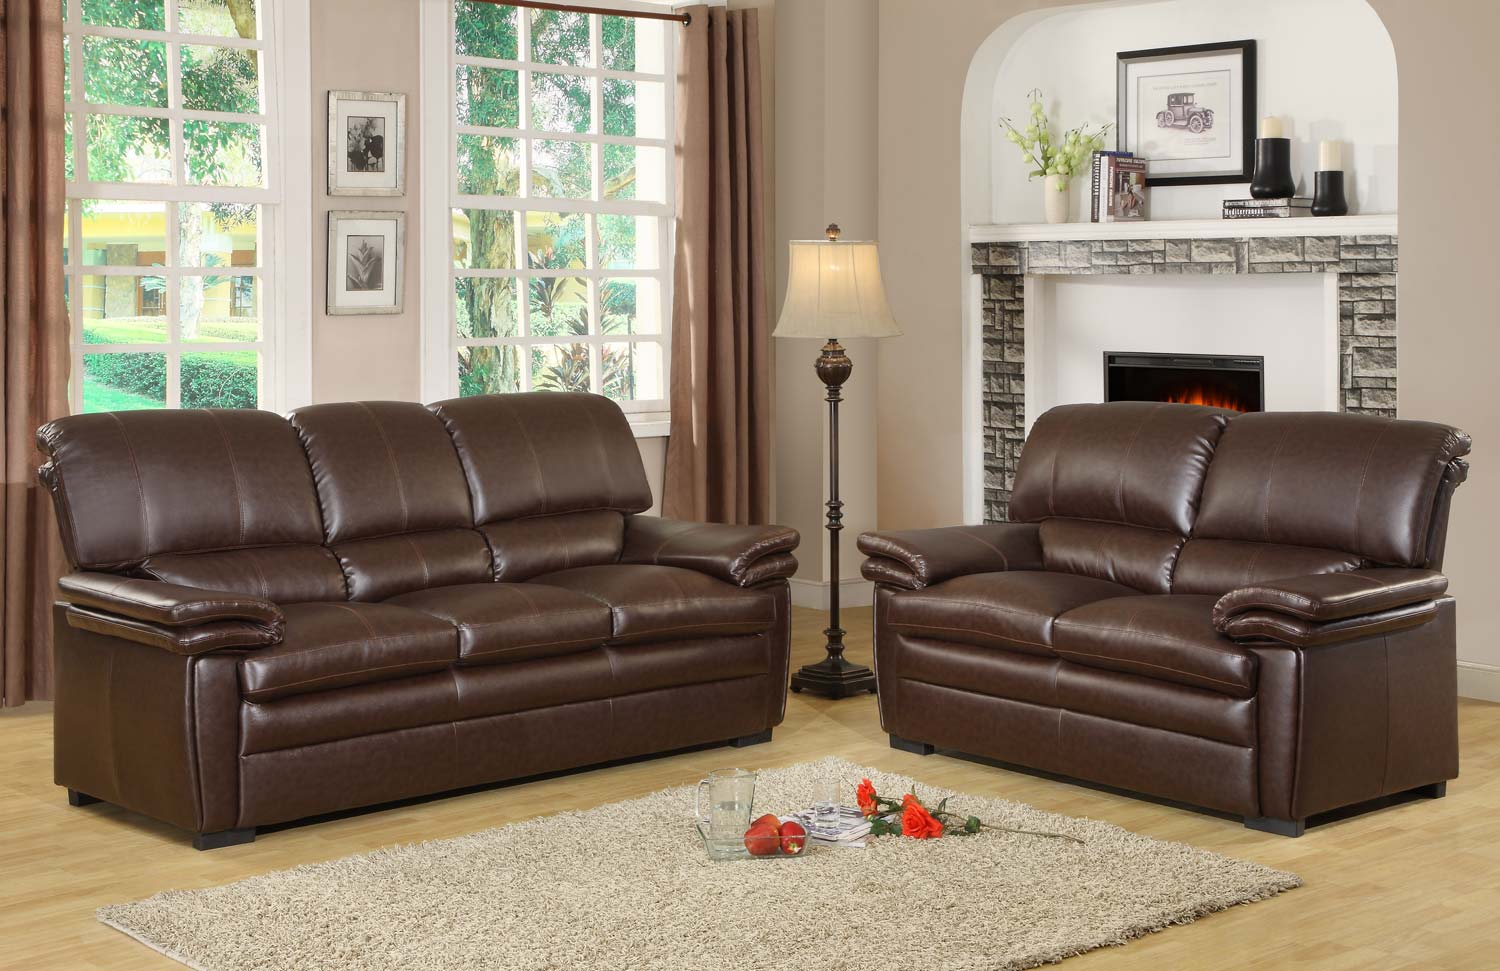 Homelegance Constance Sofa Set - Brown - Bonded Leather Match